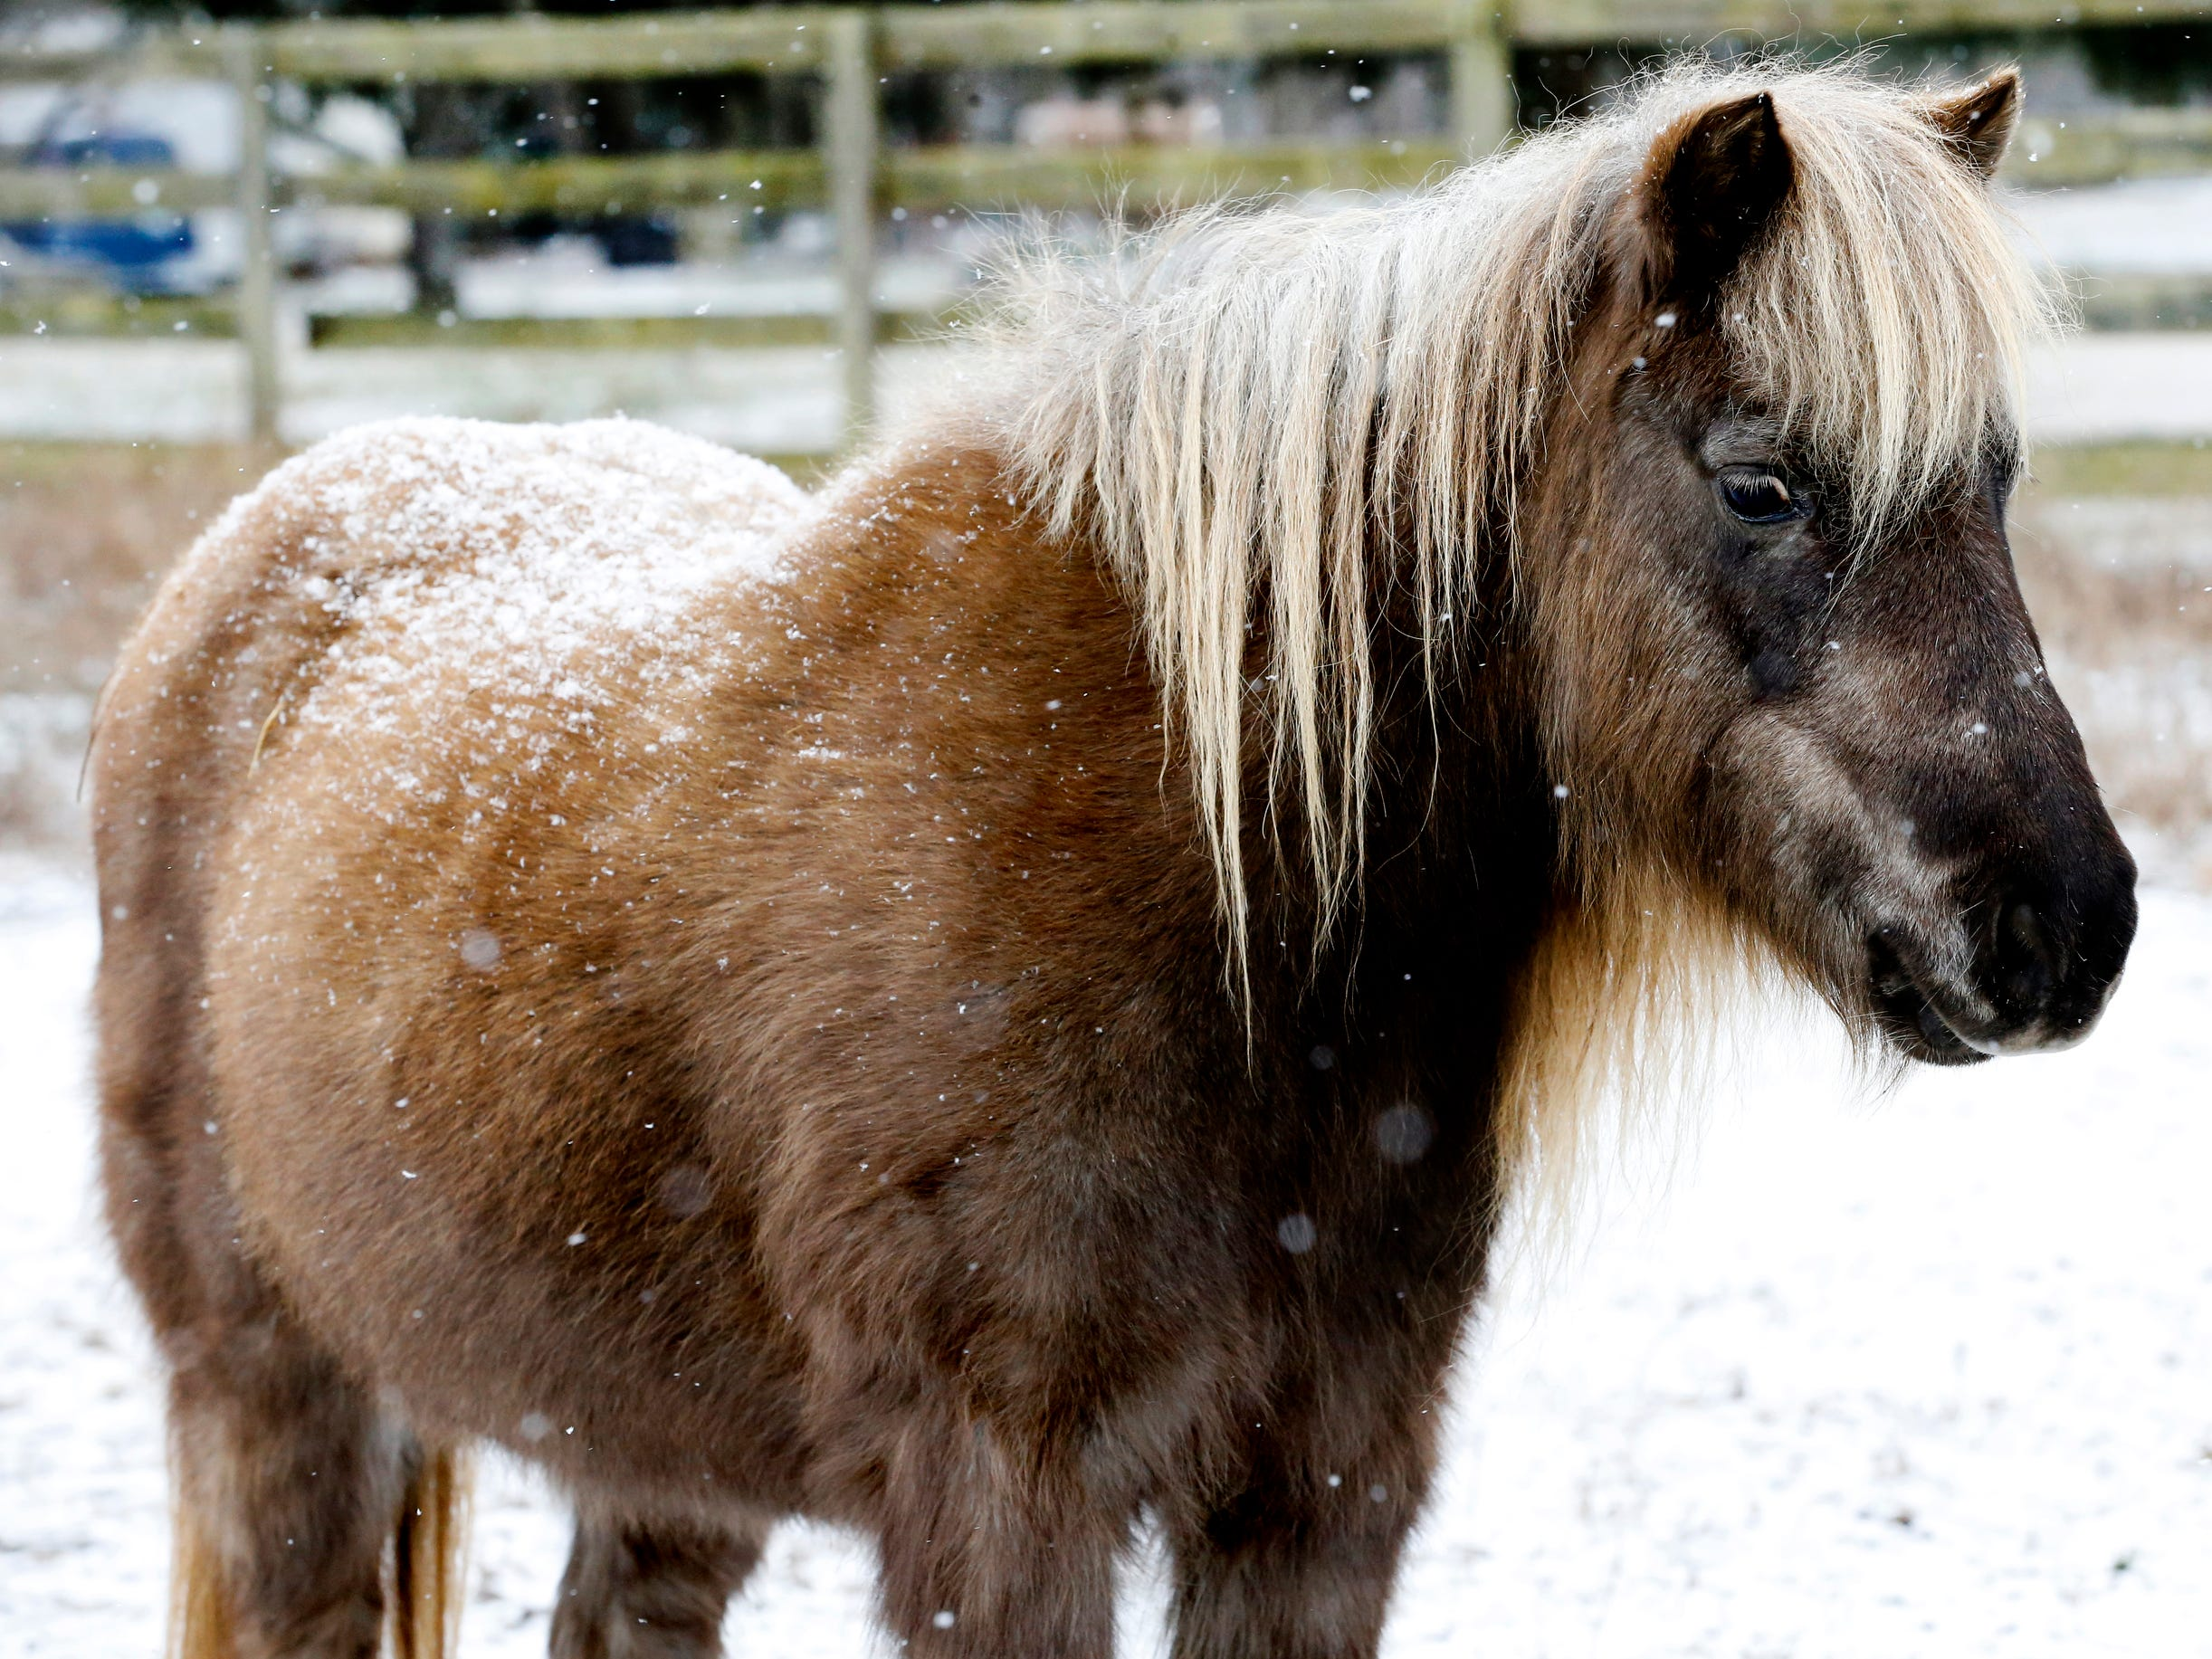 A miniature horse watches the snow fall around him near Barfield Crescent Park on Wednesday morning, Jan. 30, 2019.